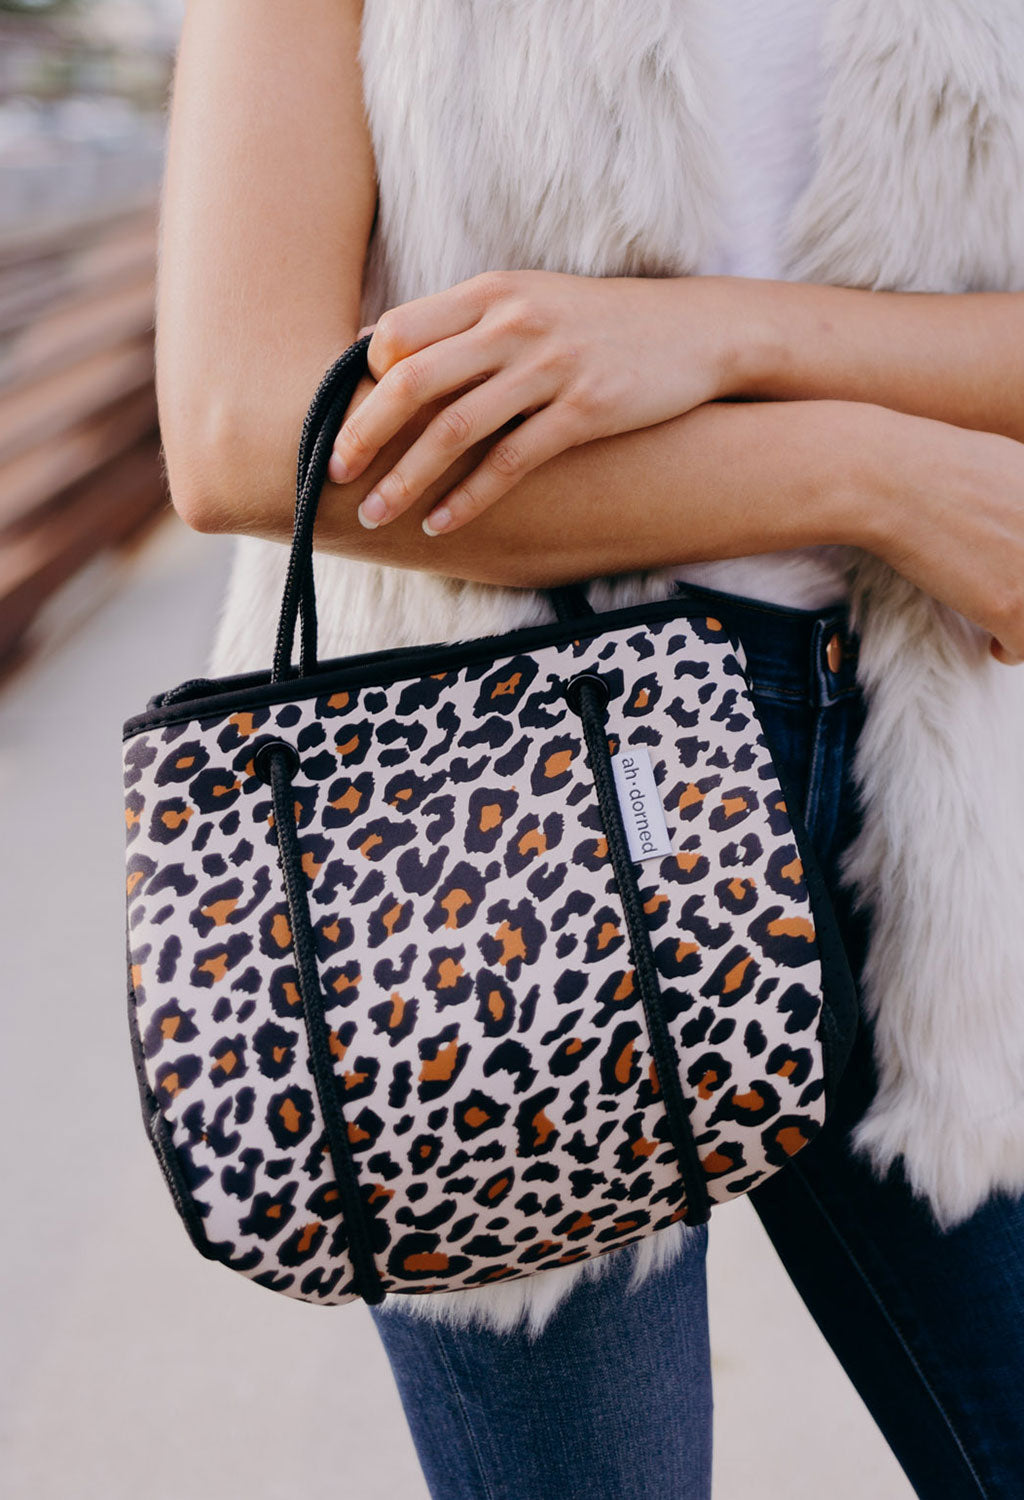 Mini Leopard Neoprene Bag w/ Black Sides - RUST & Co.